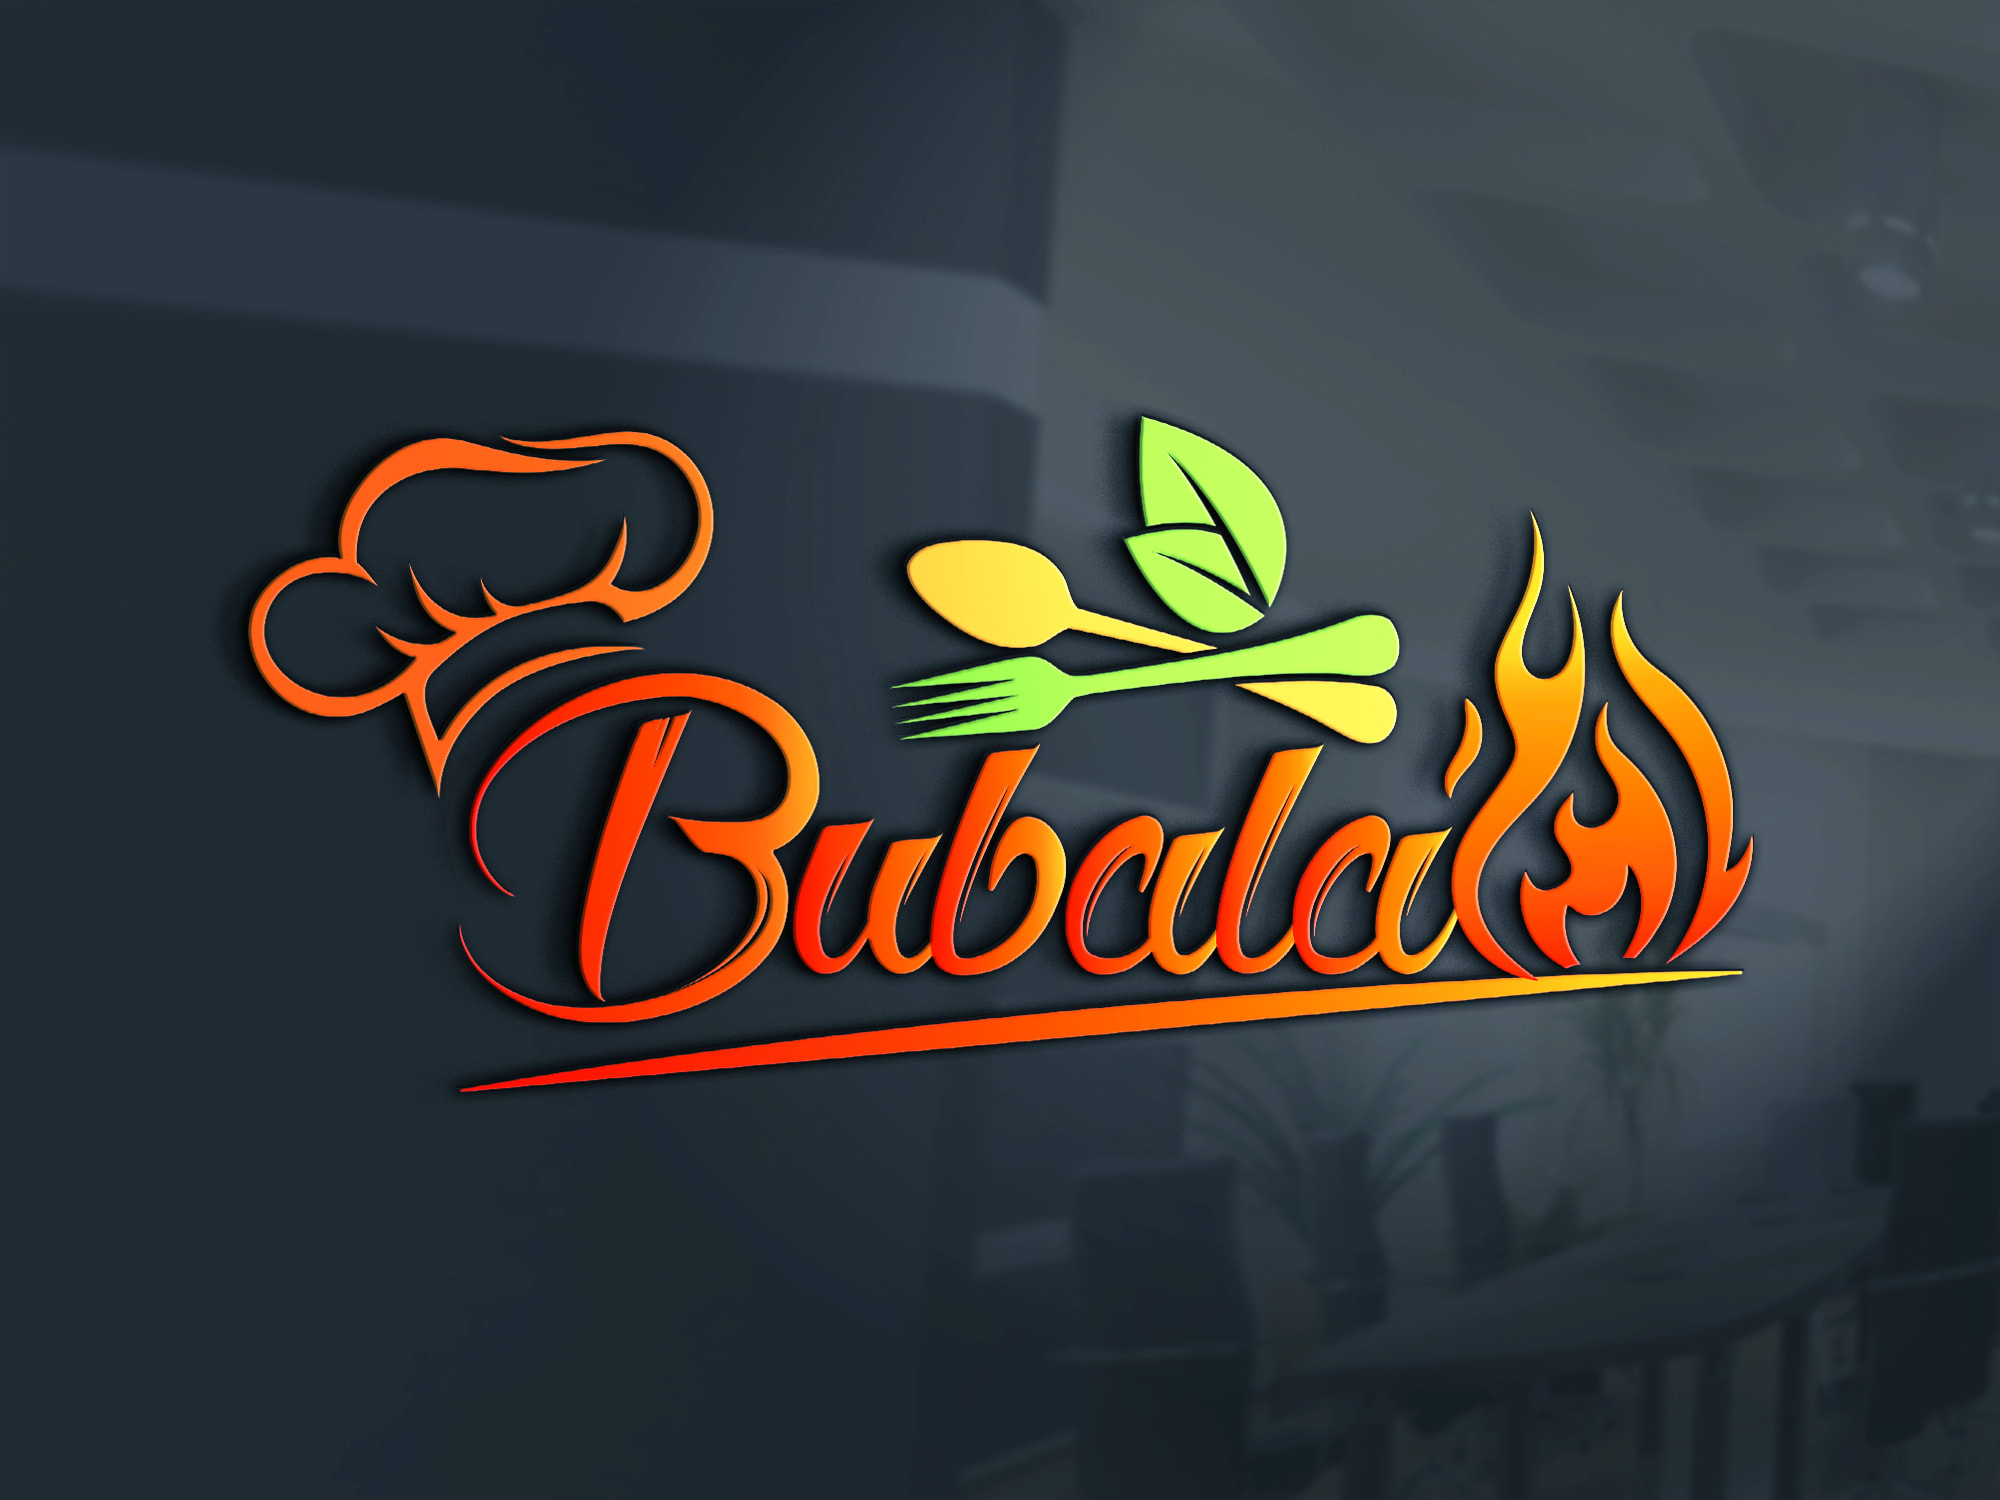 modern restaurant café chef catering fast food BBQ logo 2 HQ Concepts /5 Revisions / HQ JPEG + PNG